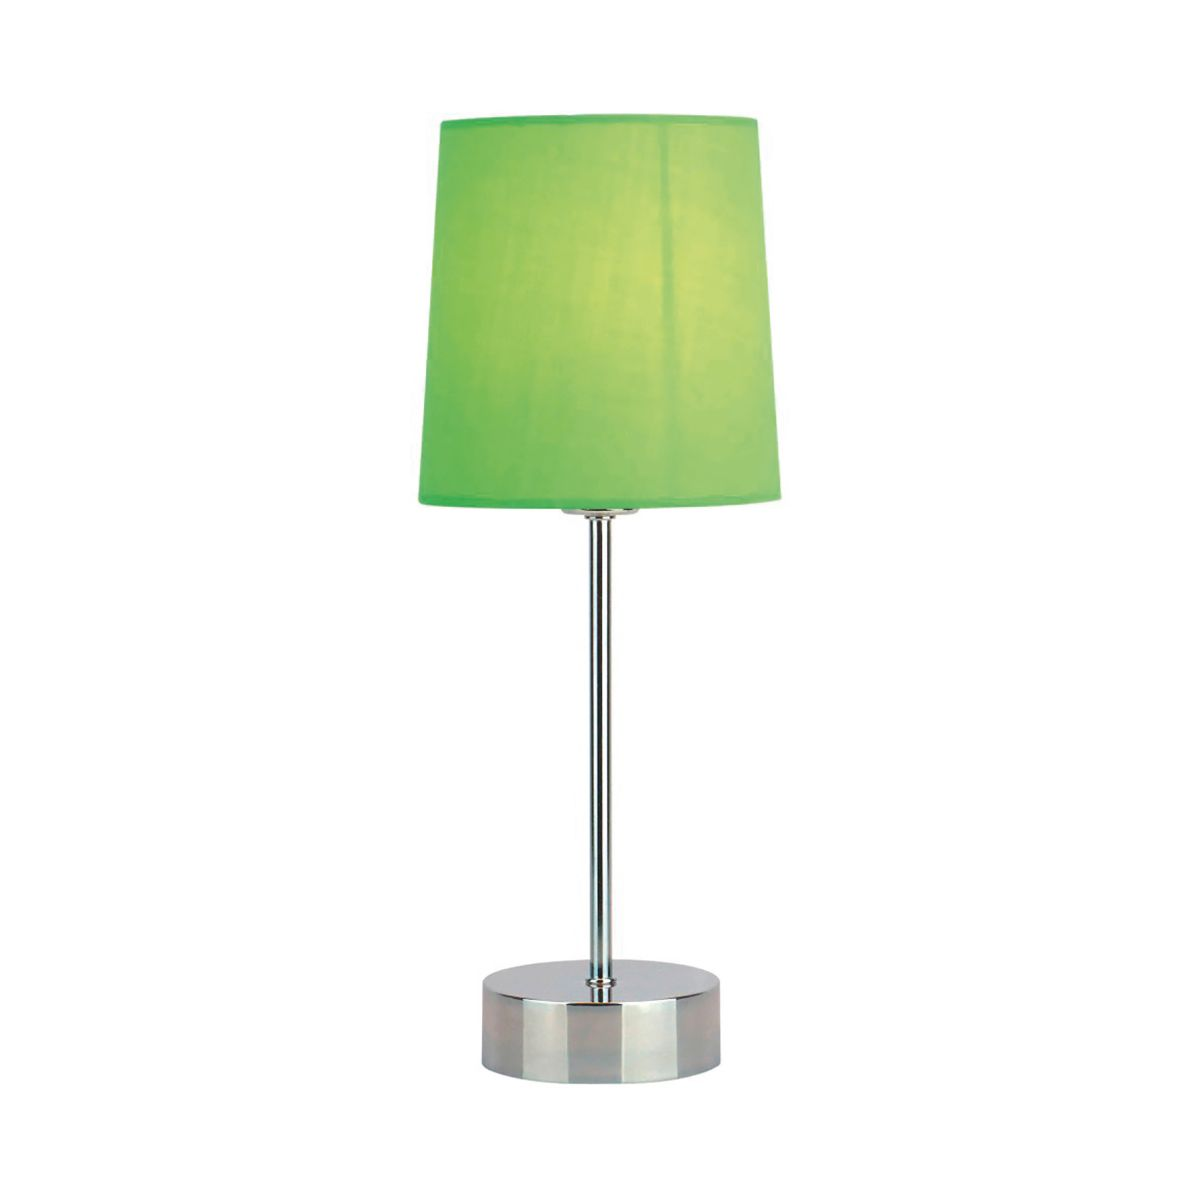 Quebec Chrome Stick Touch Table Lamp Shade, Green Shade